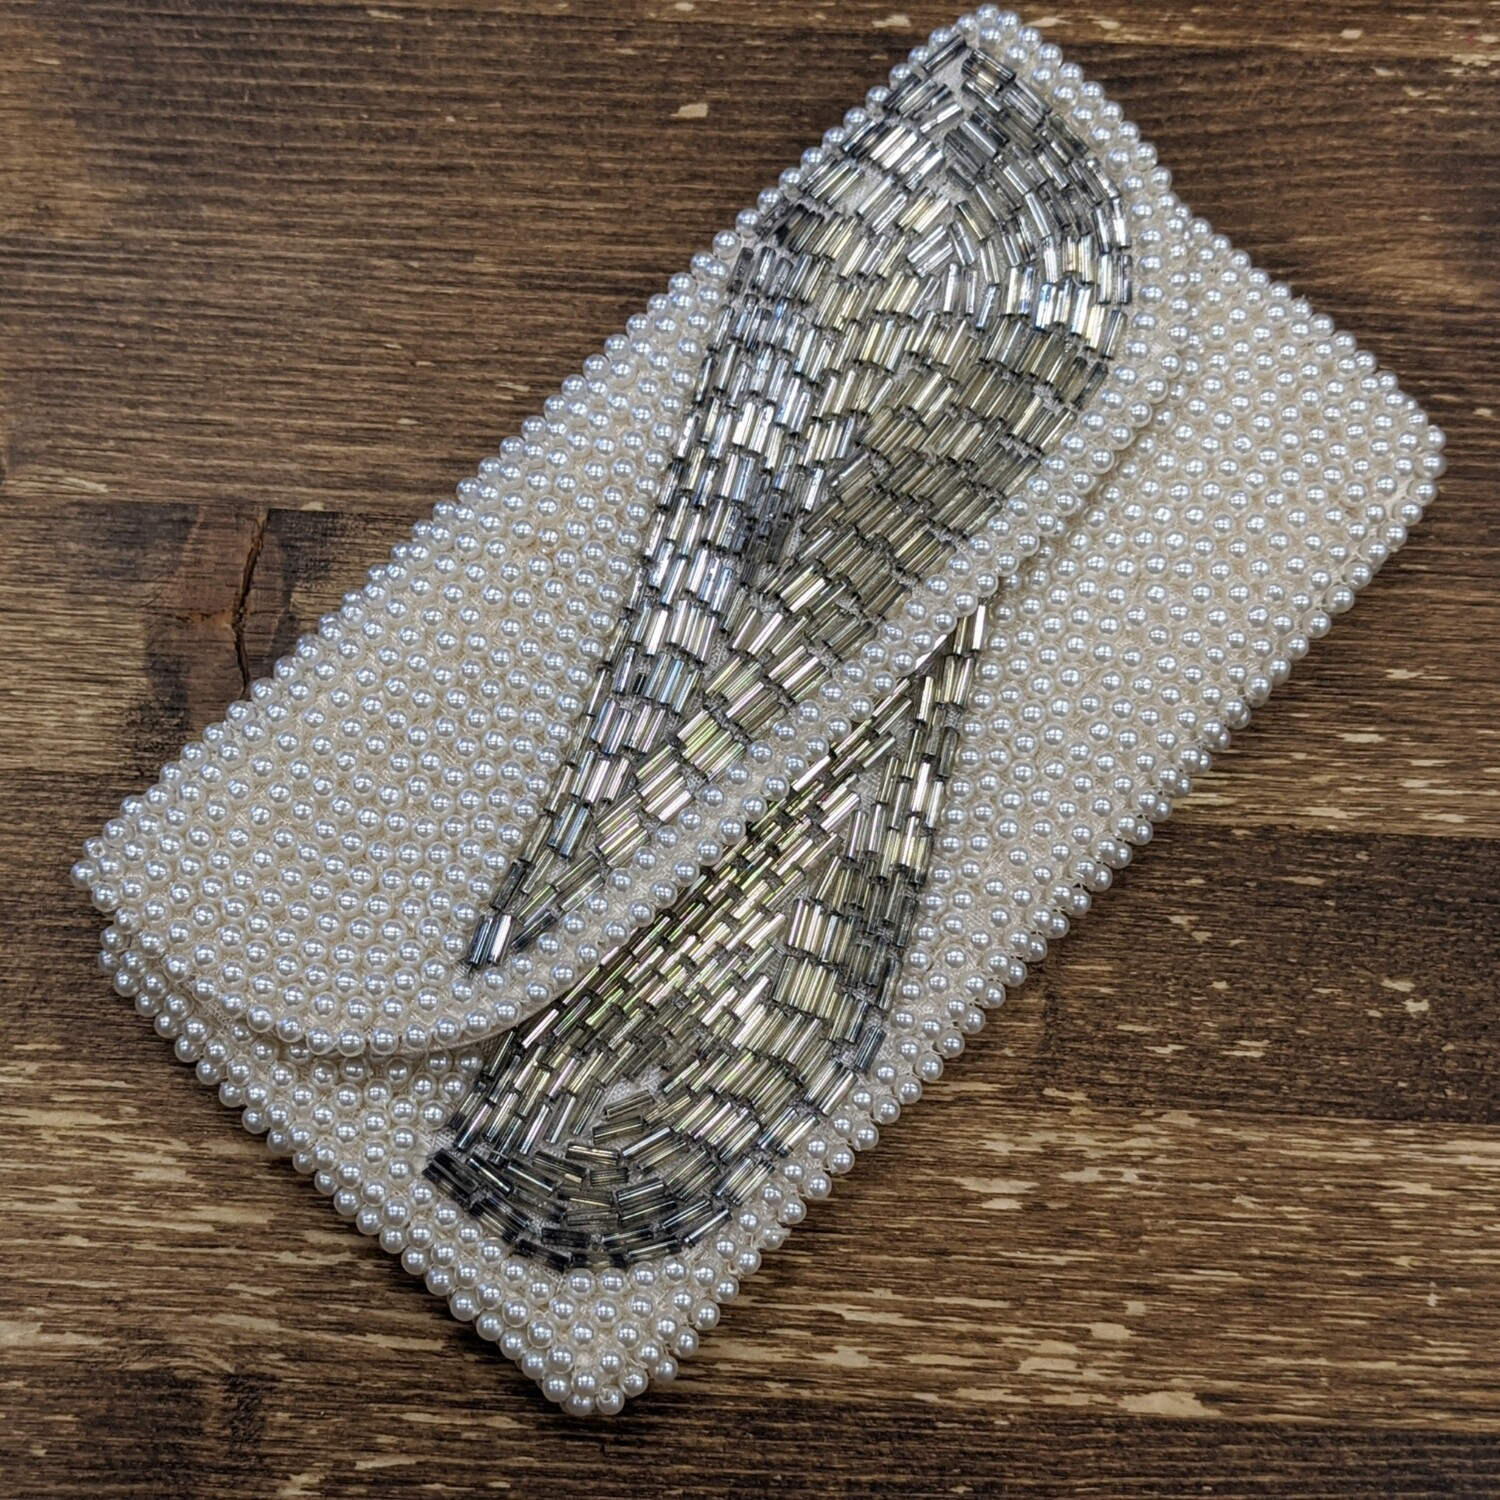 Vintage Pearl Beaded Clutch